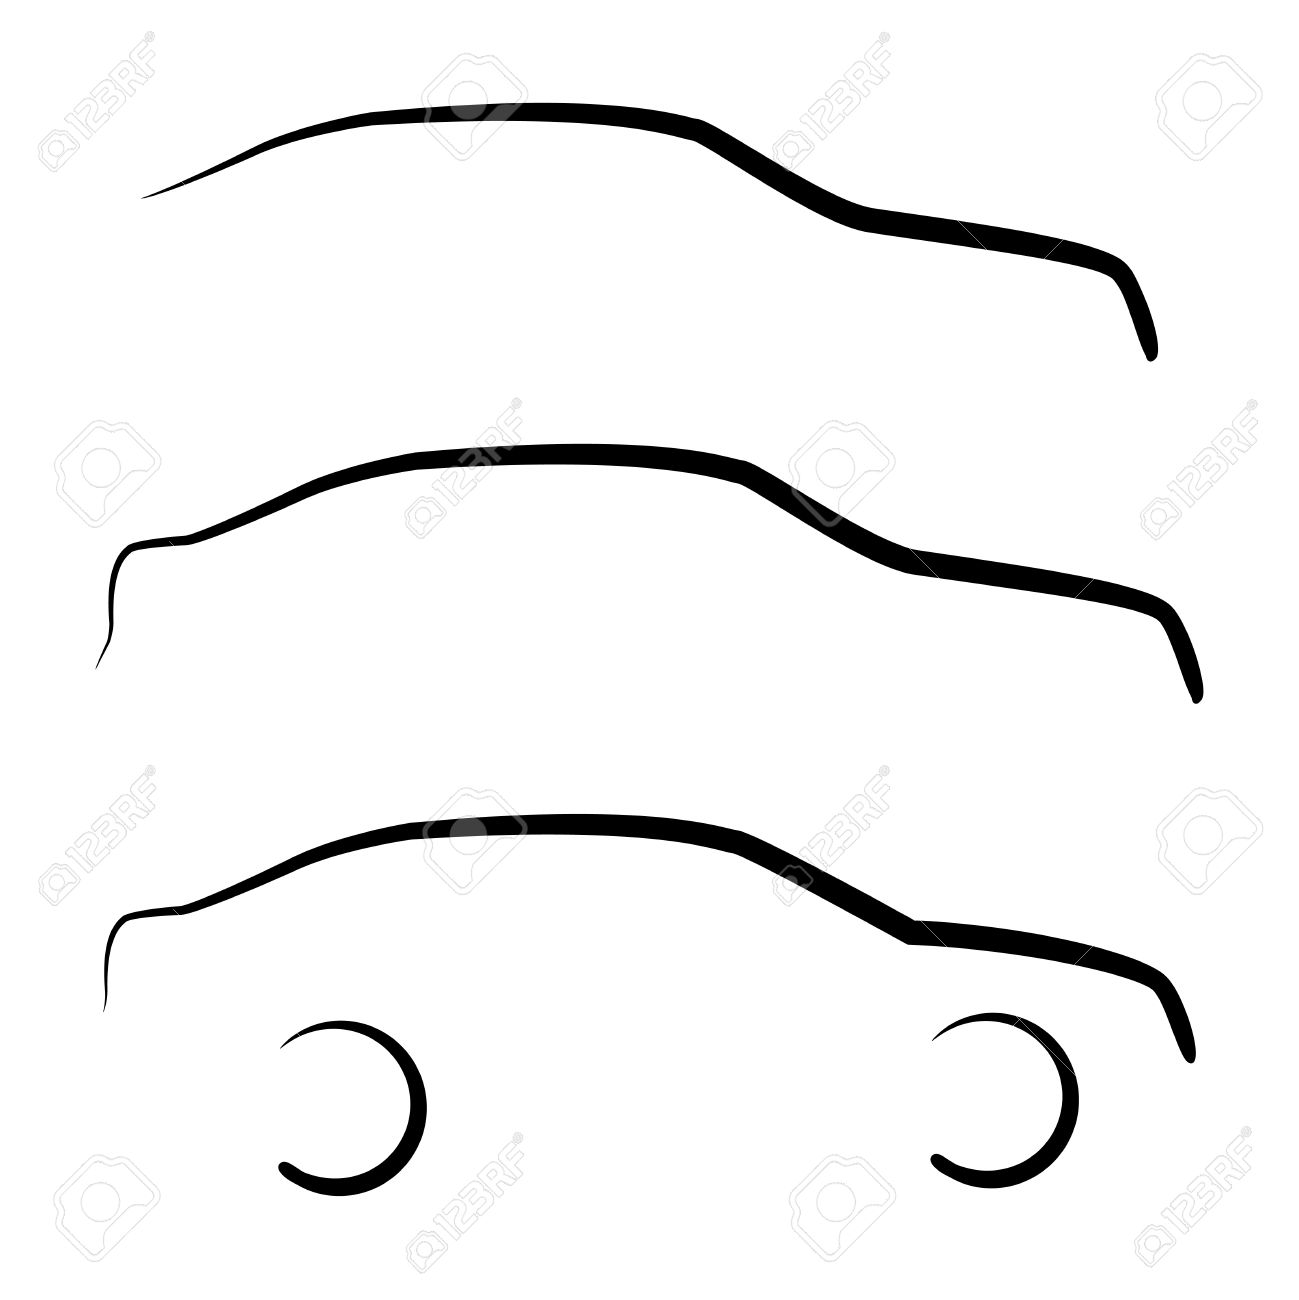 set of abstract car outline silhouettes royalty free cliparts rh 123rf com outlines car vector drawing vintage car outline vector